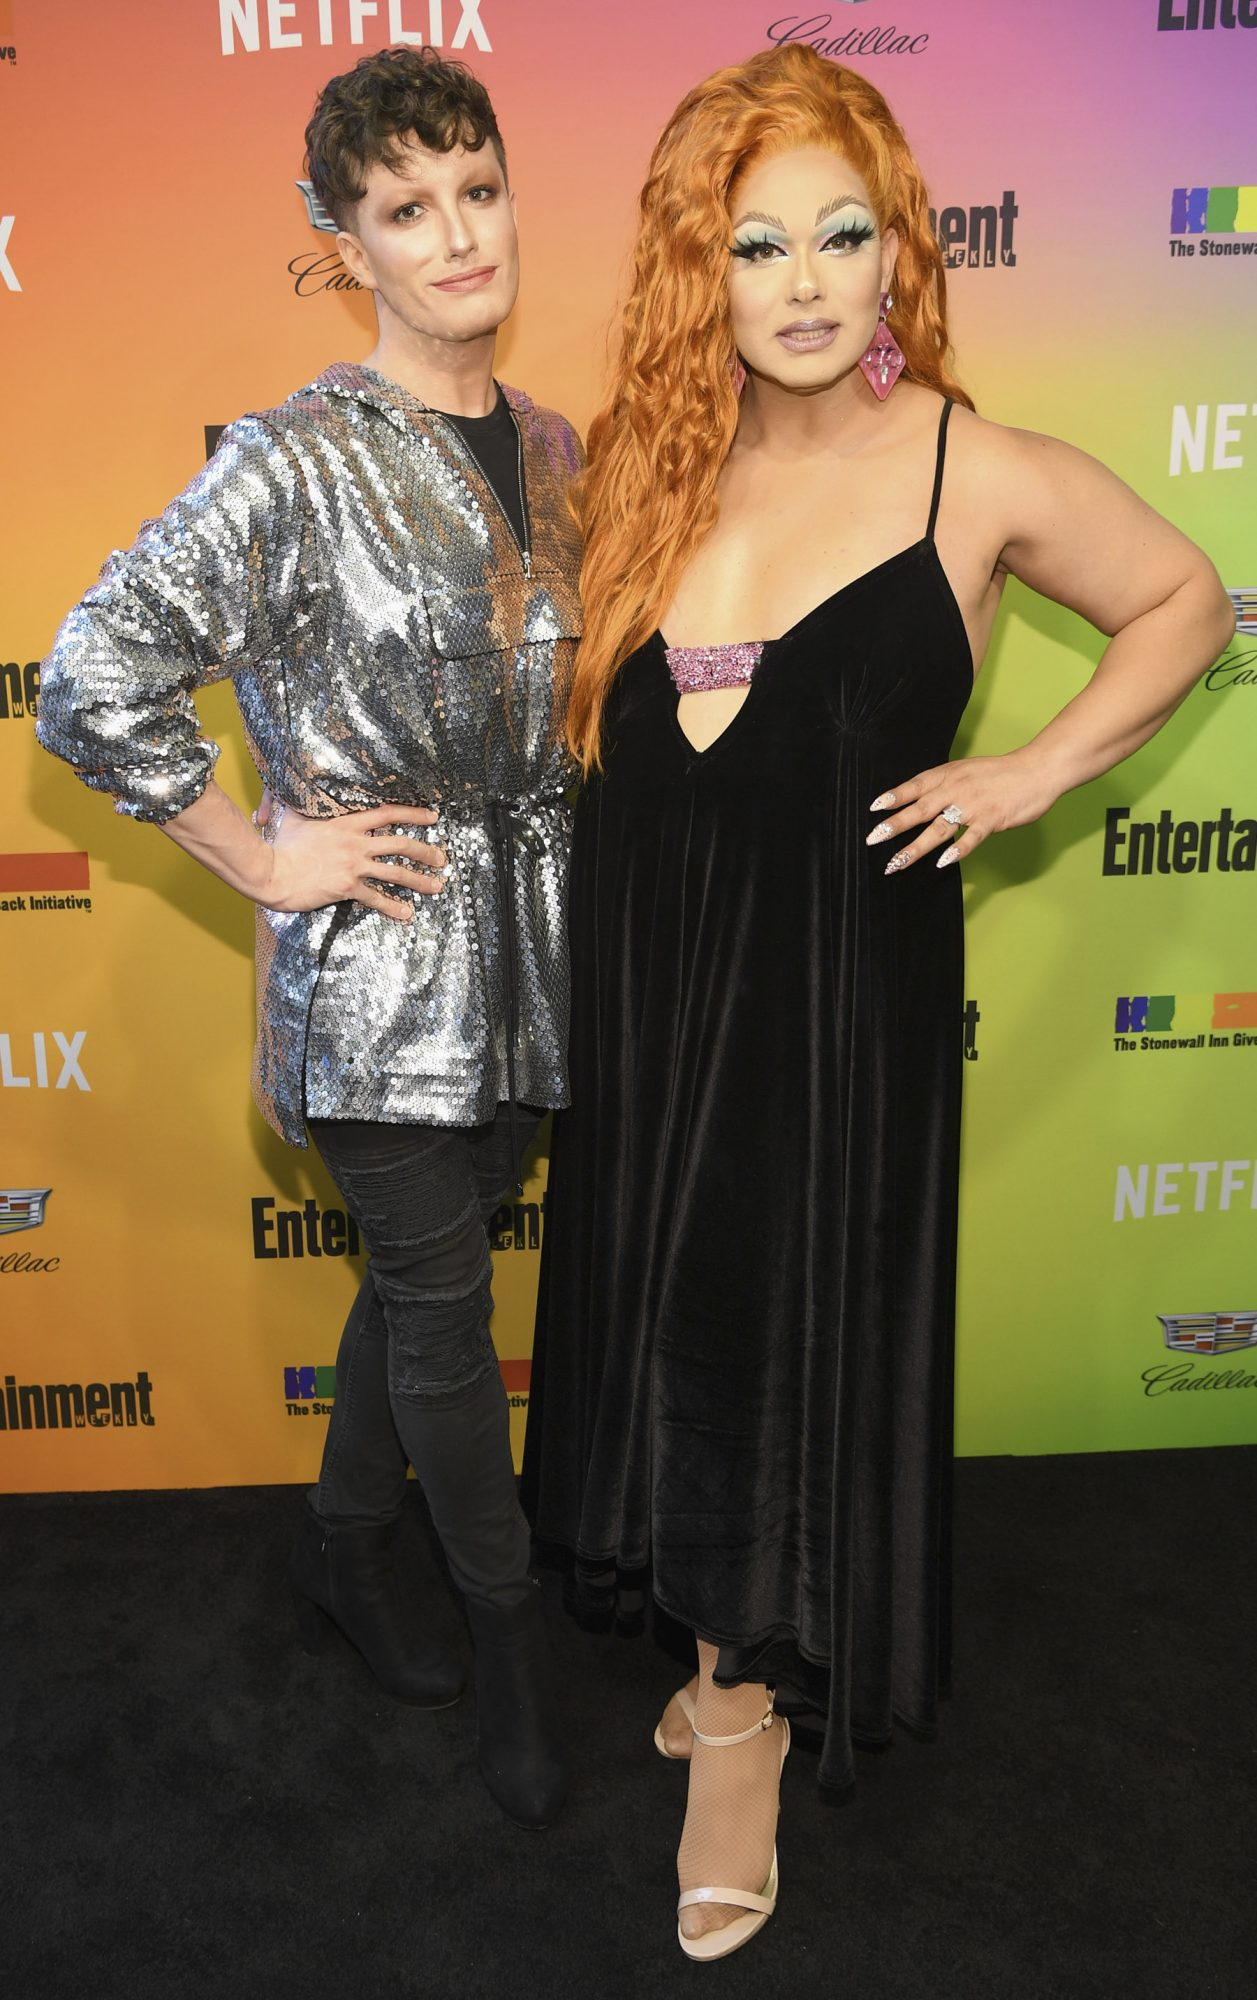 NEW YORK, NEW YORK - JUNE 05: Joe Lah and Alexis Michelle attend as Entertainment Weekly Celebrates Its Annual LGBTQ Issue at the Stonewall Inn on June 05, 2019 in New York City. (Photo by Dimitrios Kambouris/Getty Images for Entertainment Weekly)